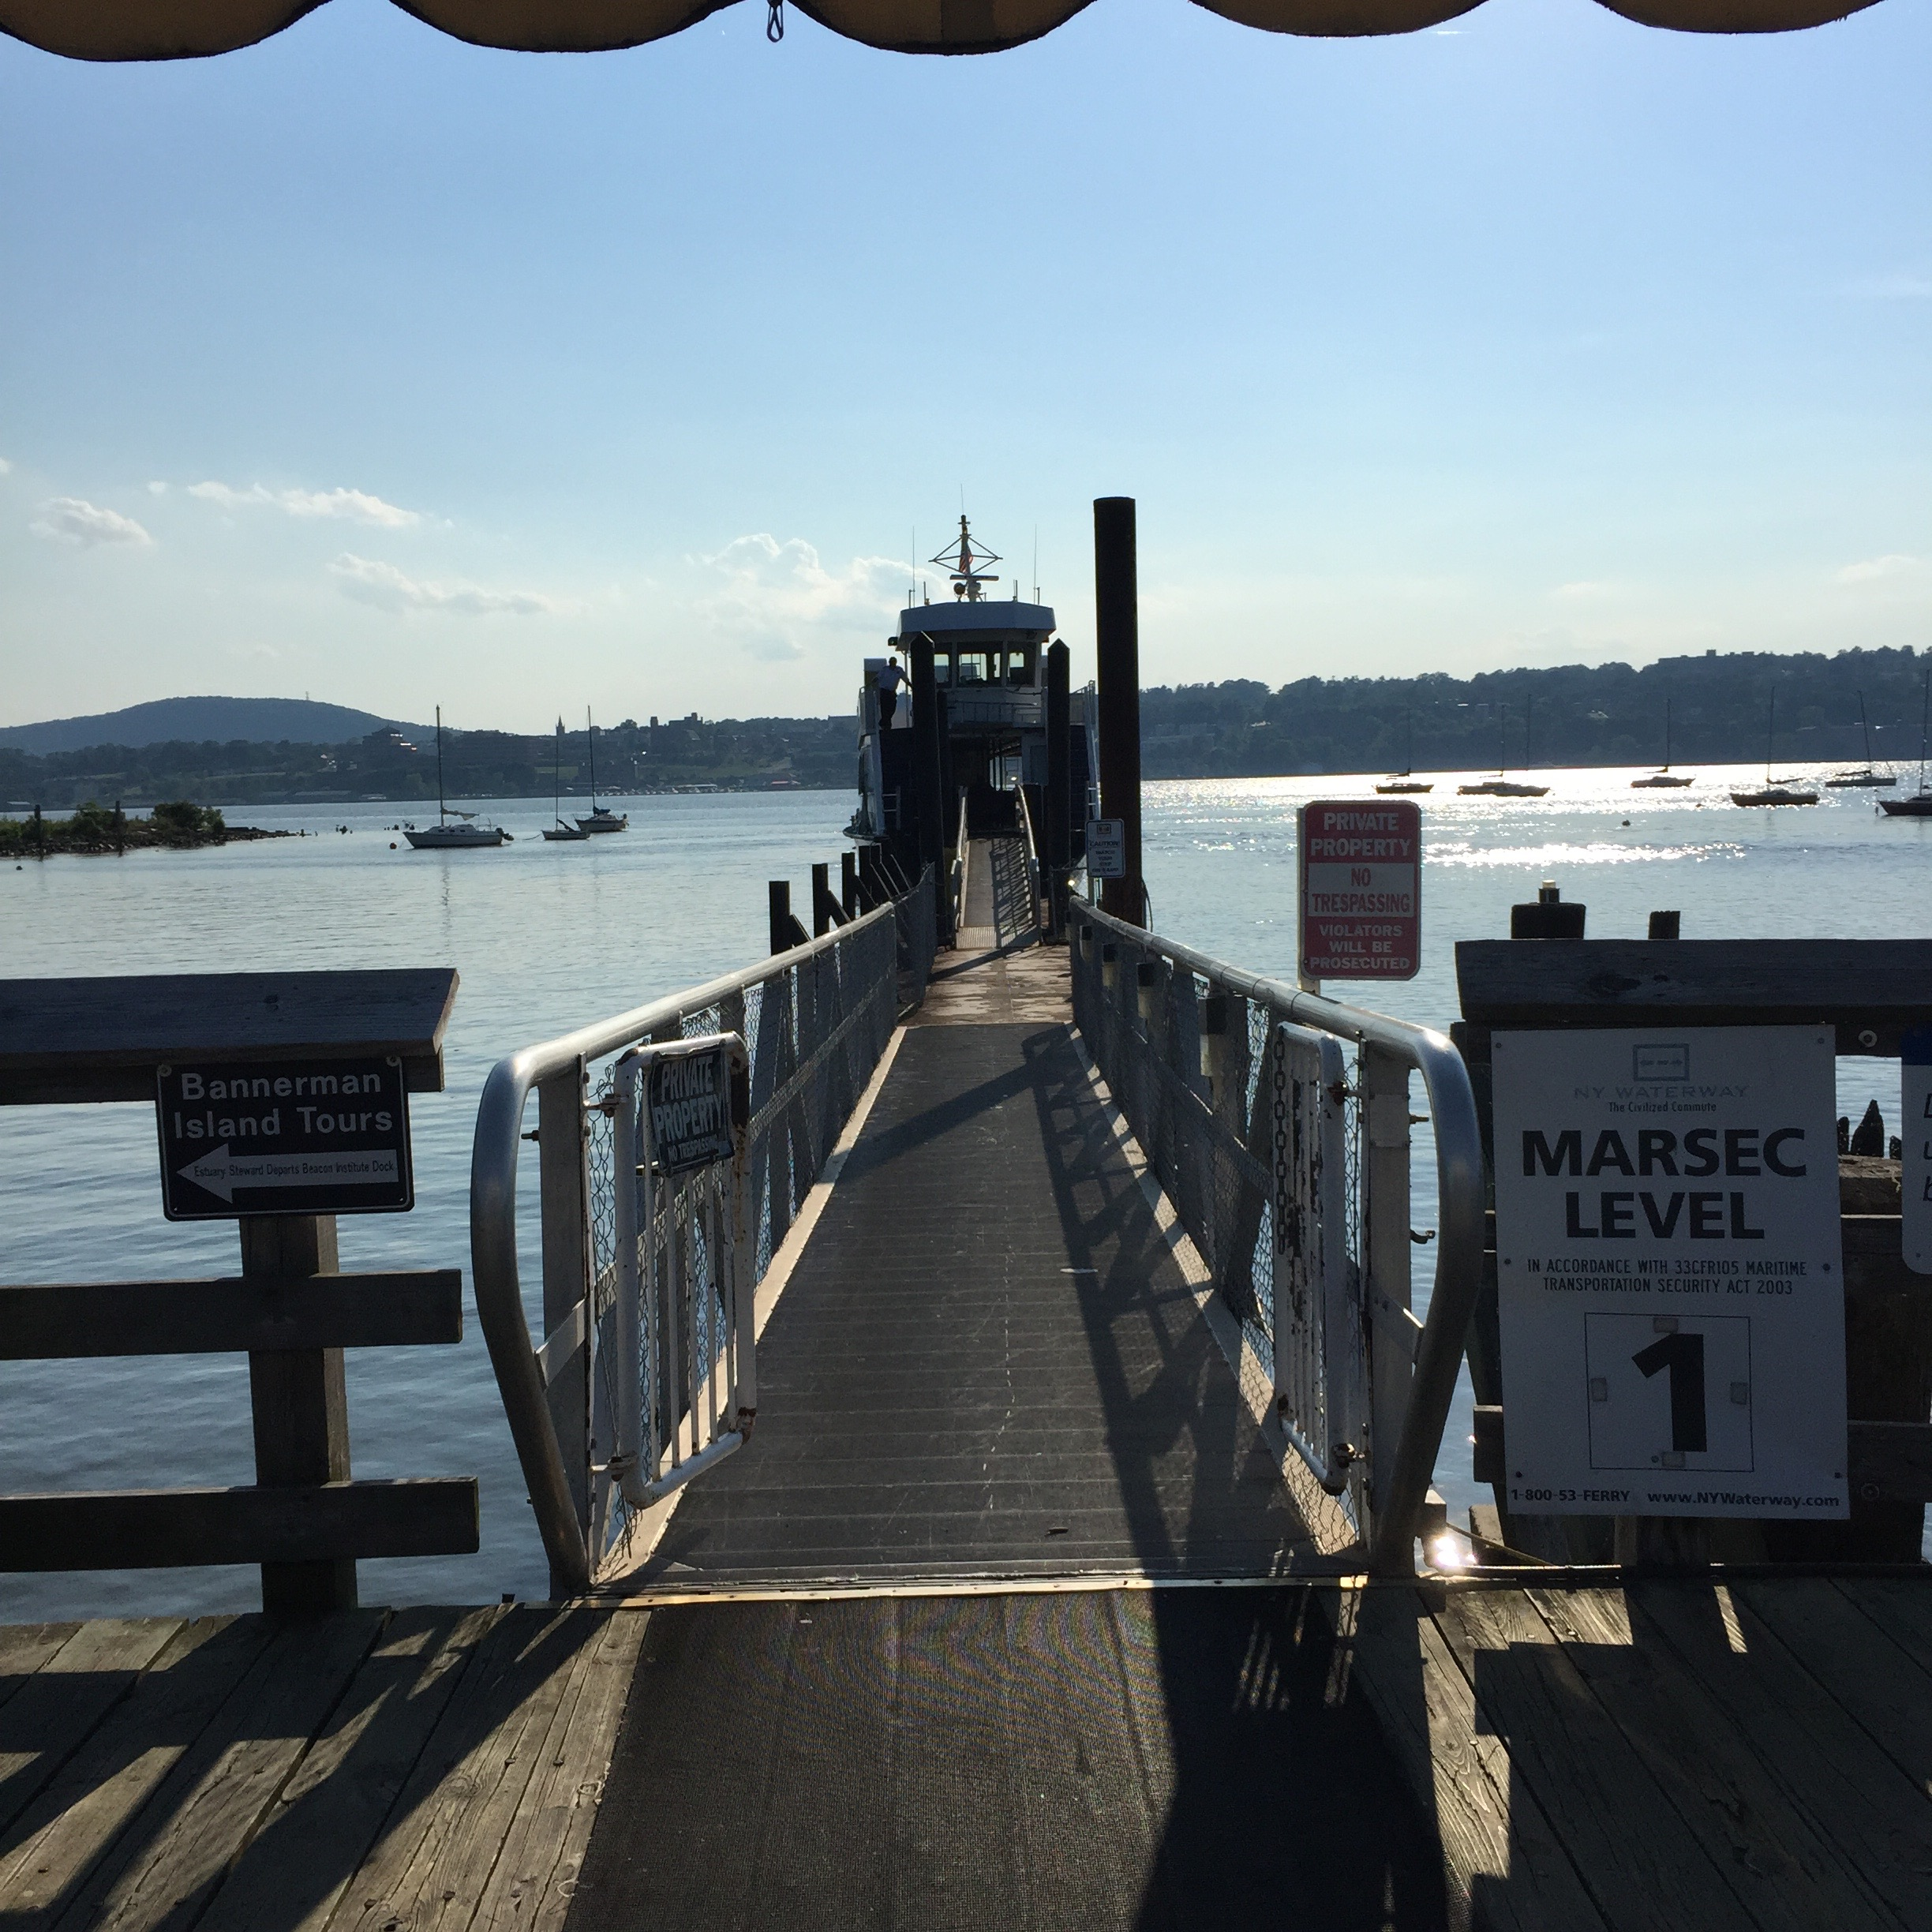 The boarding dock today near Long Dock on the Beacon side. Photo Credit: Katie Hellmuth Martin